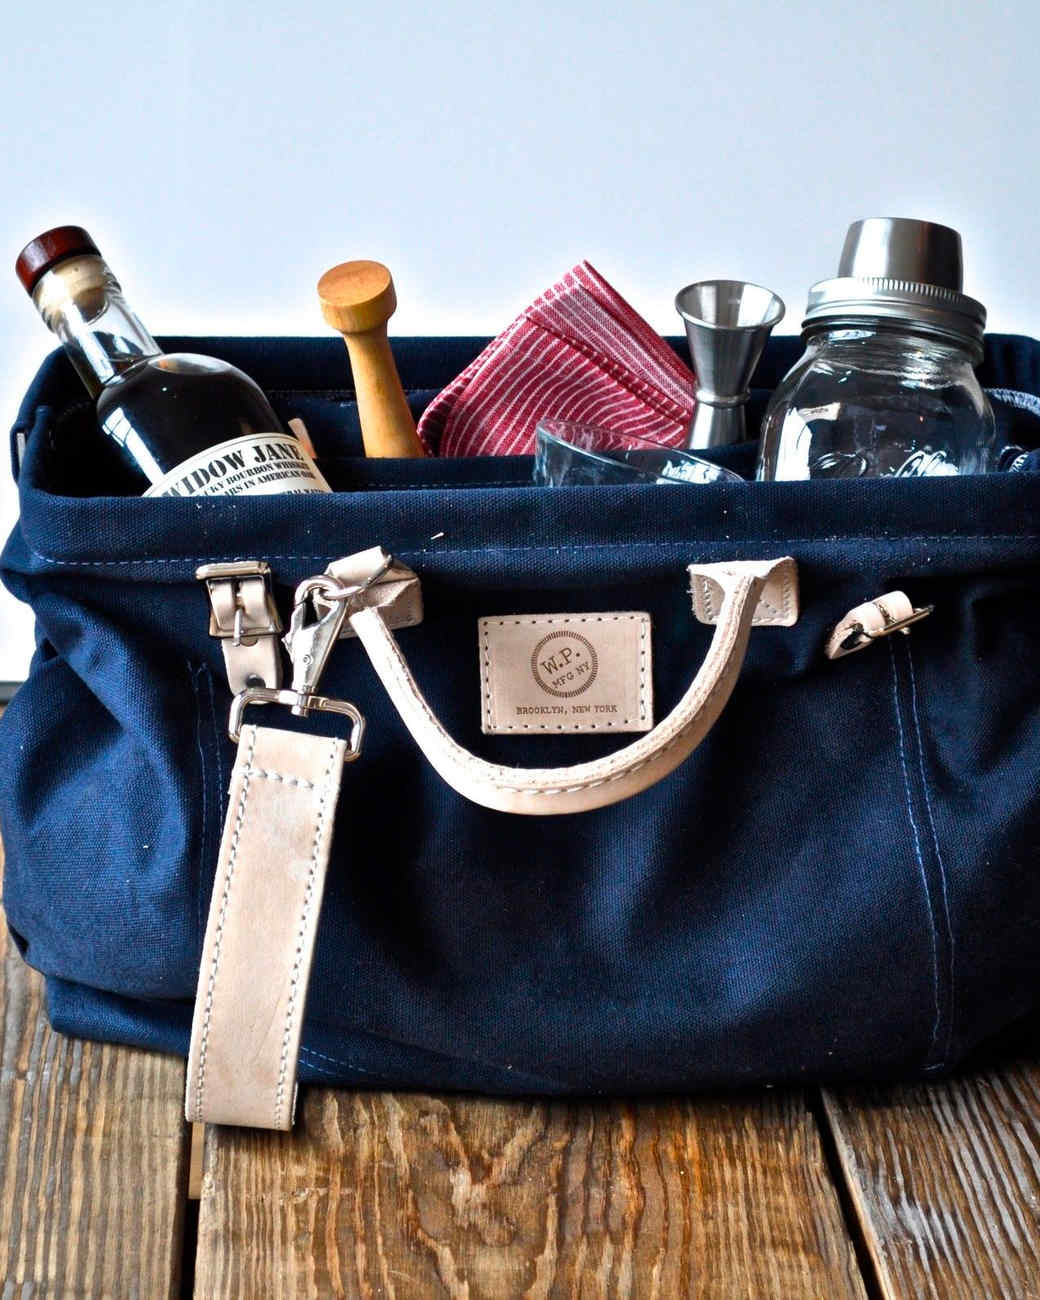 w-p-design-cocktail-carry-all-bag-05-14.jpg